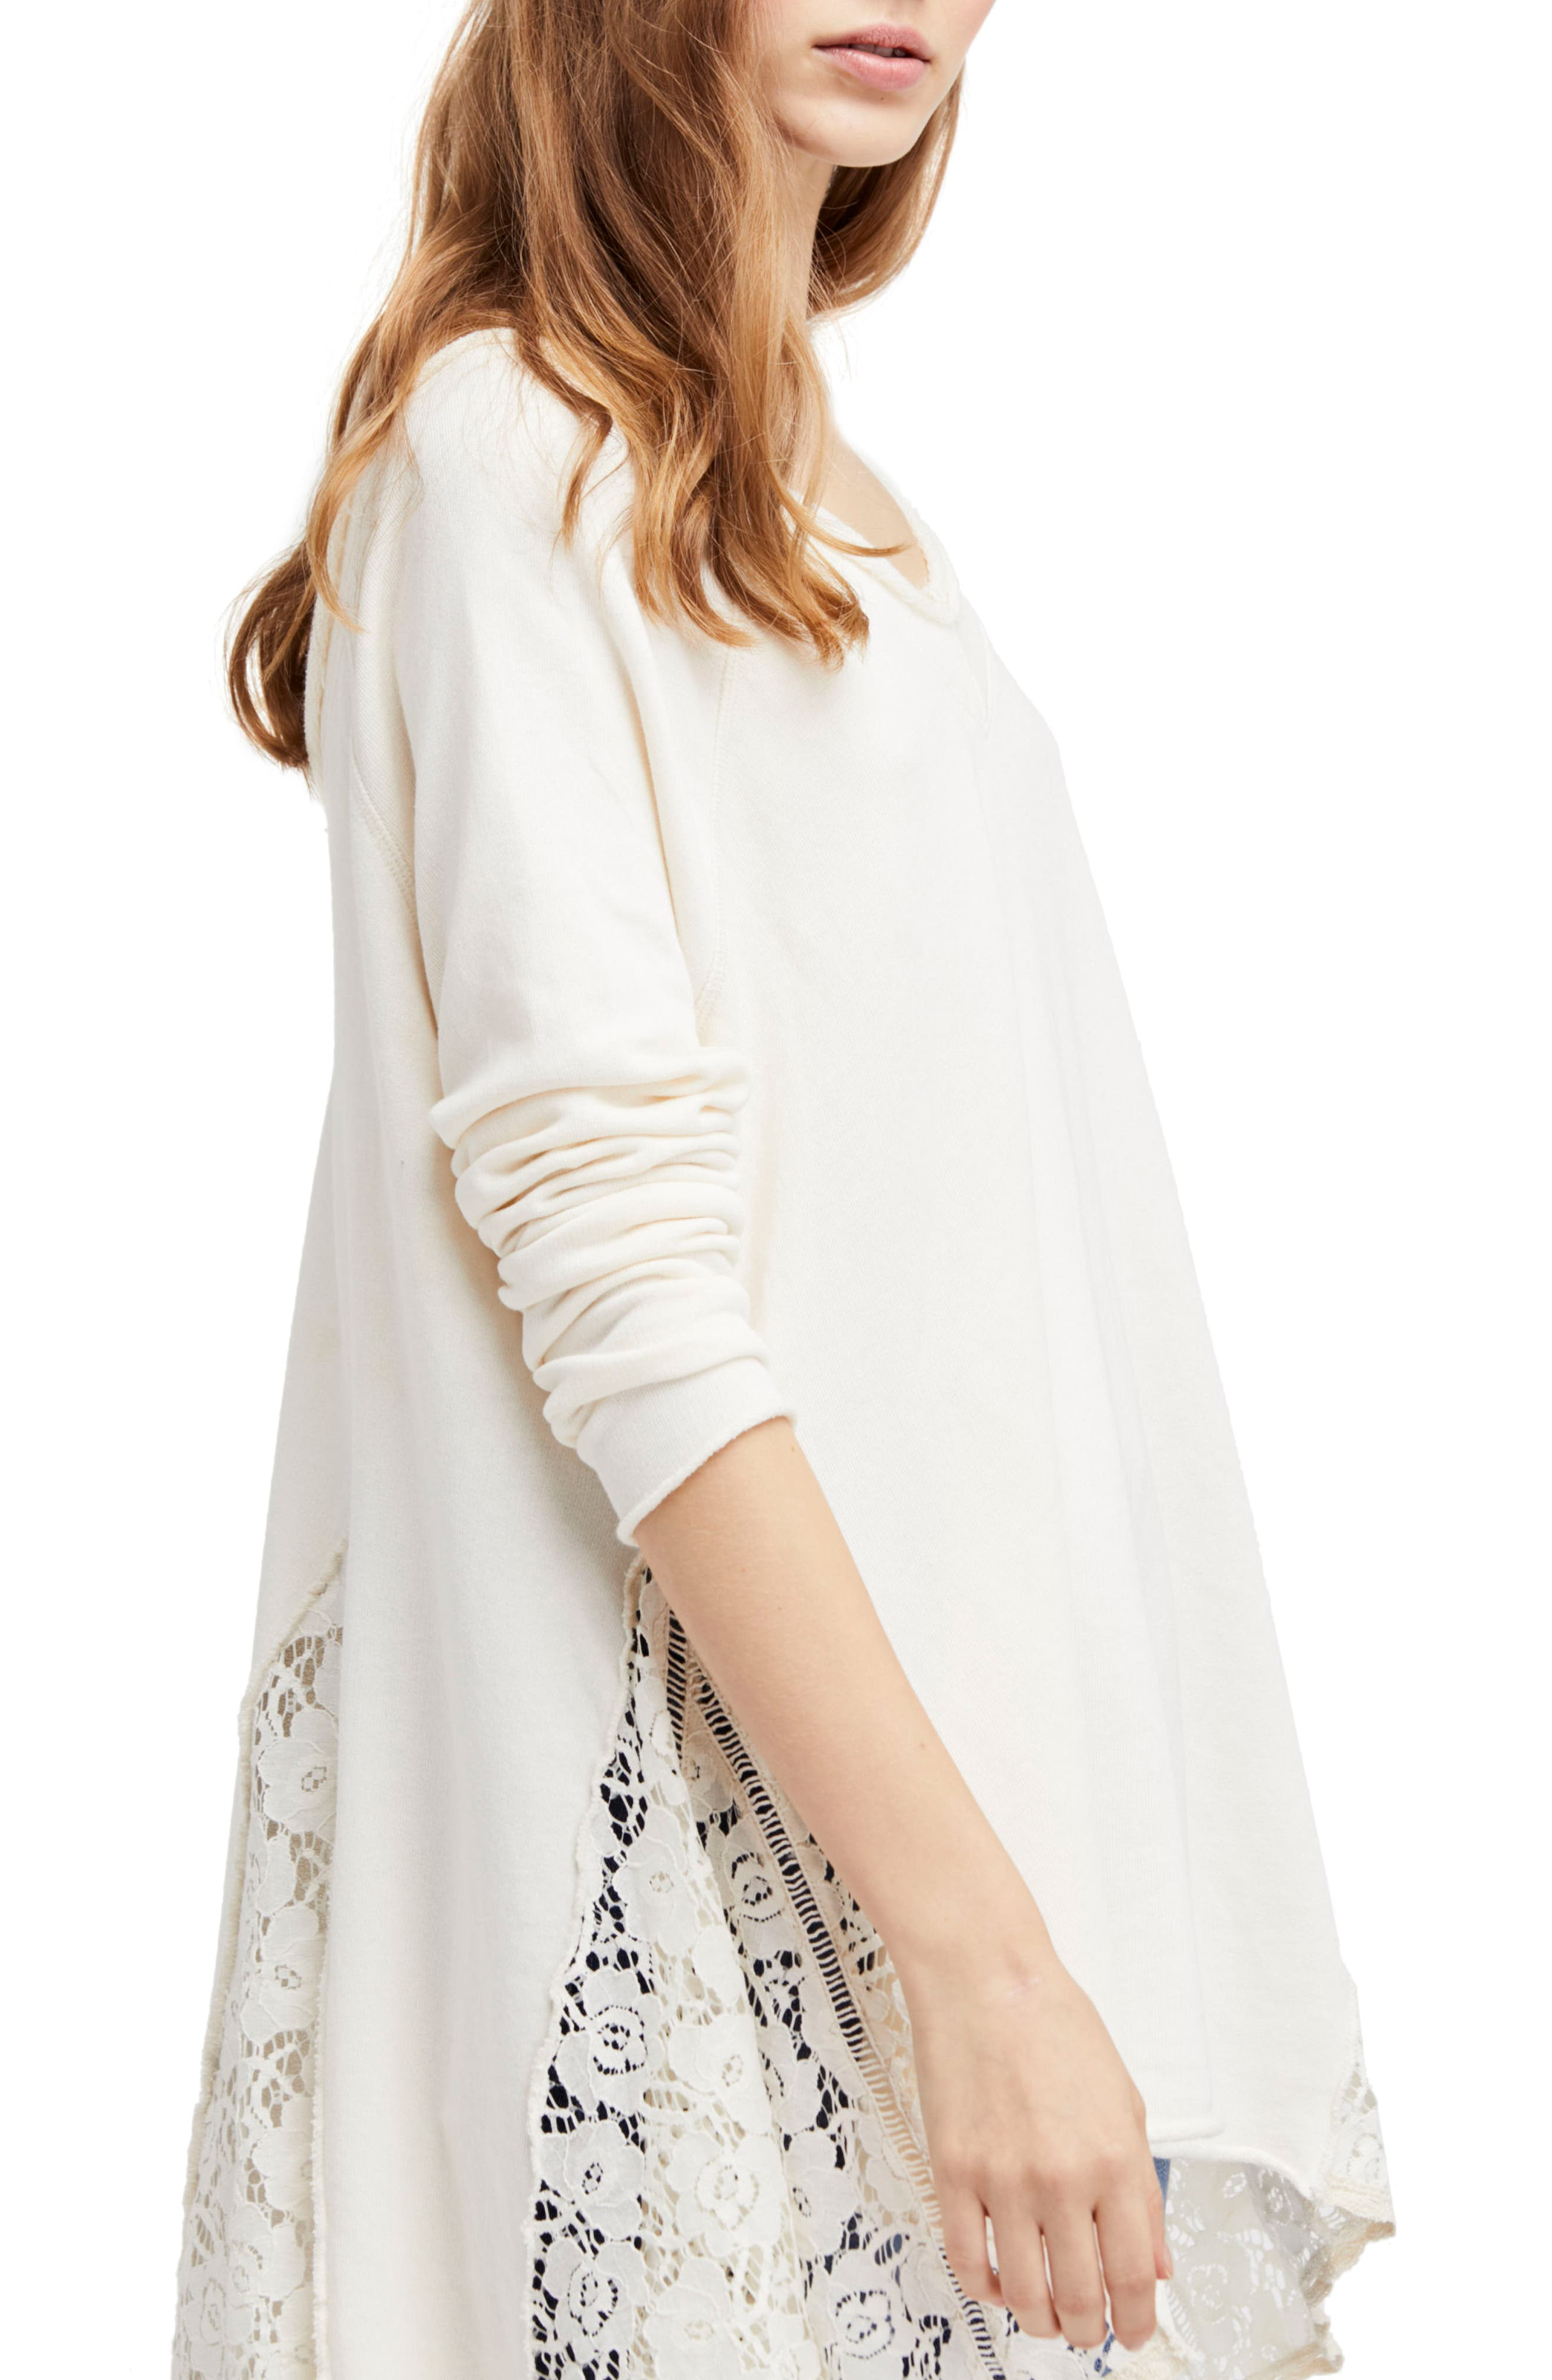 Alternate Image 1 Selected - Free People No Frills Lace Inset Asymmetrical Top